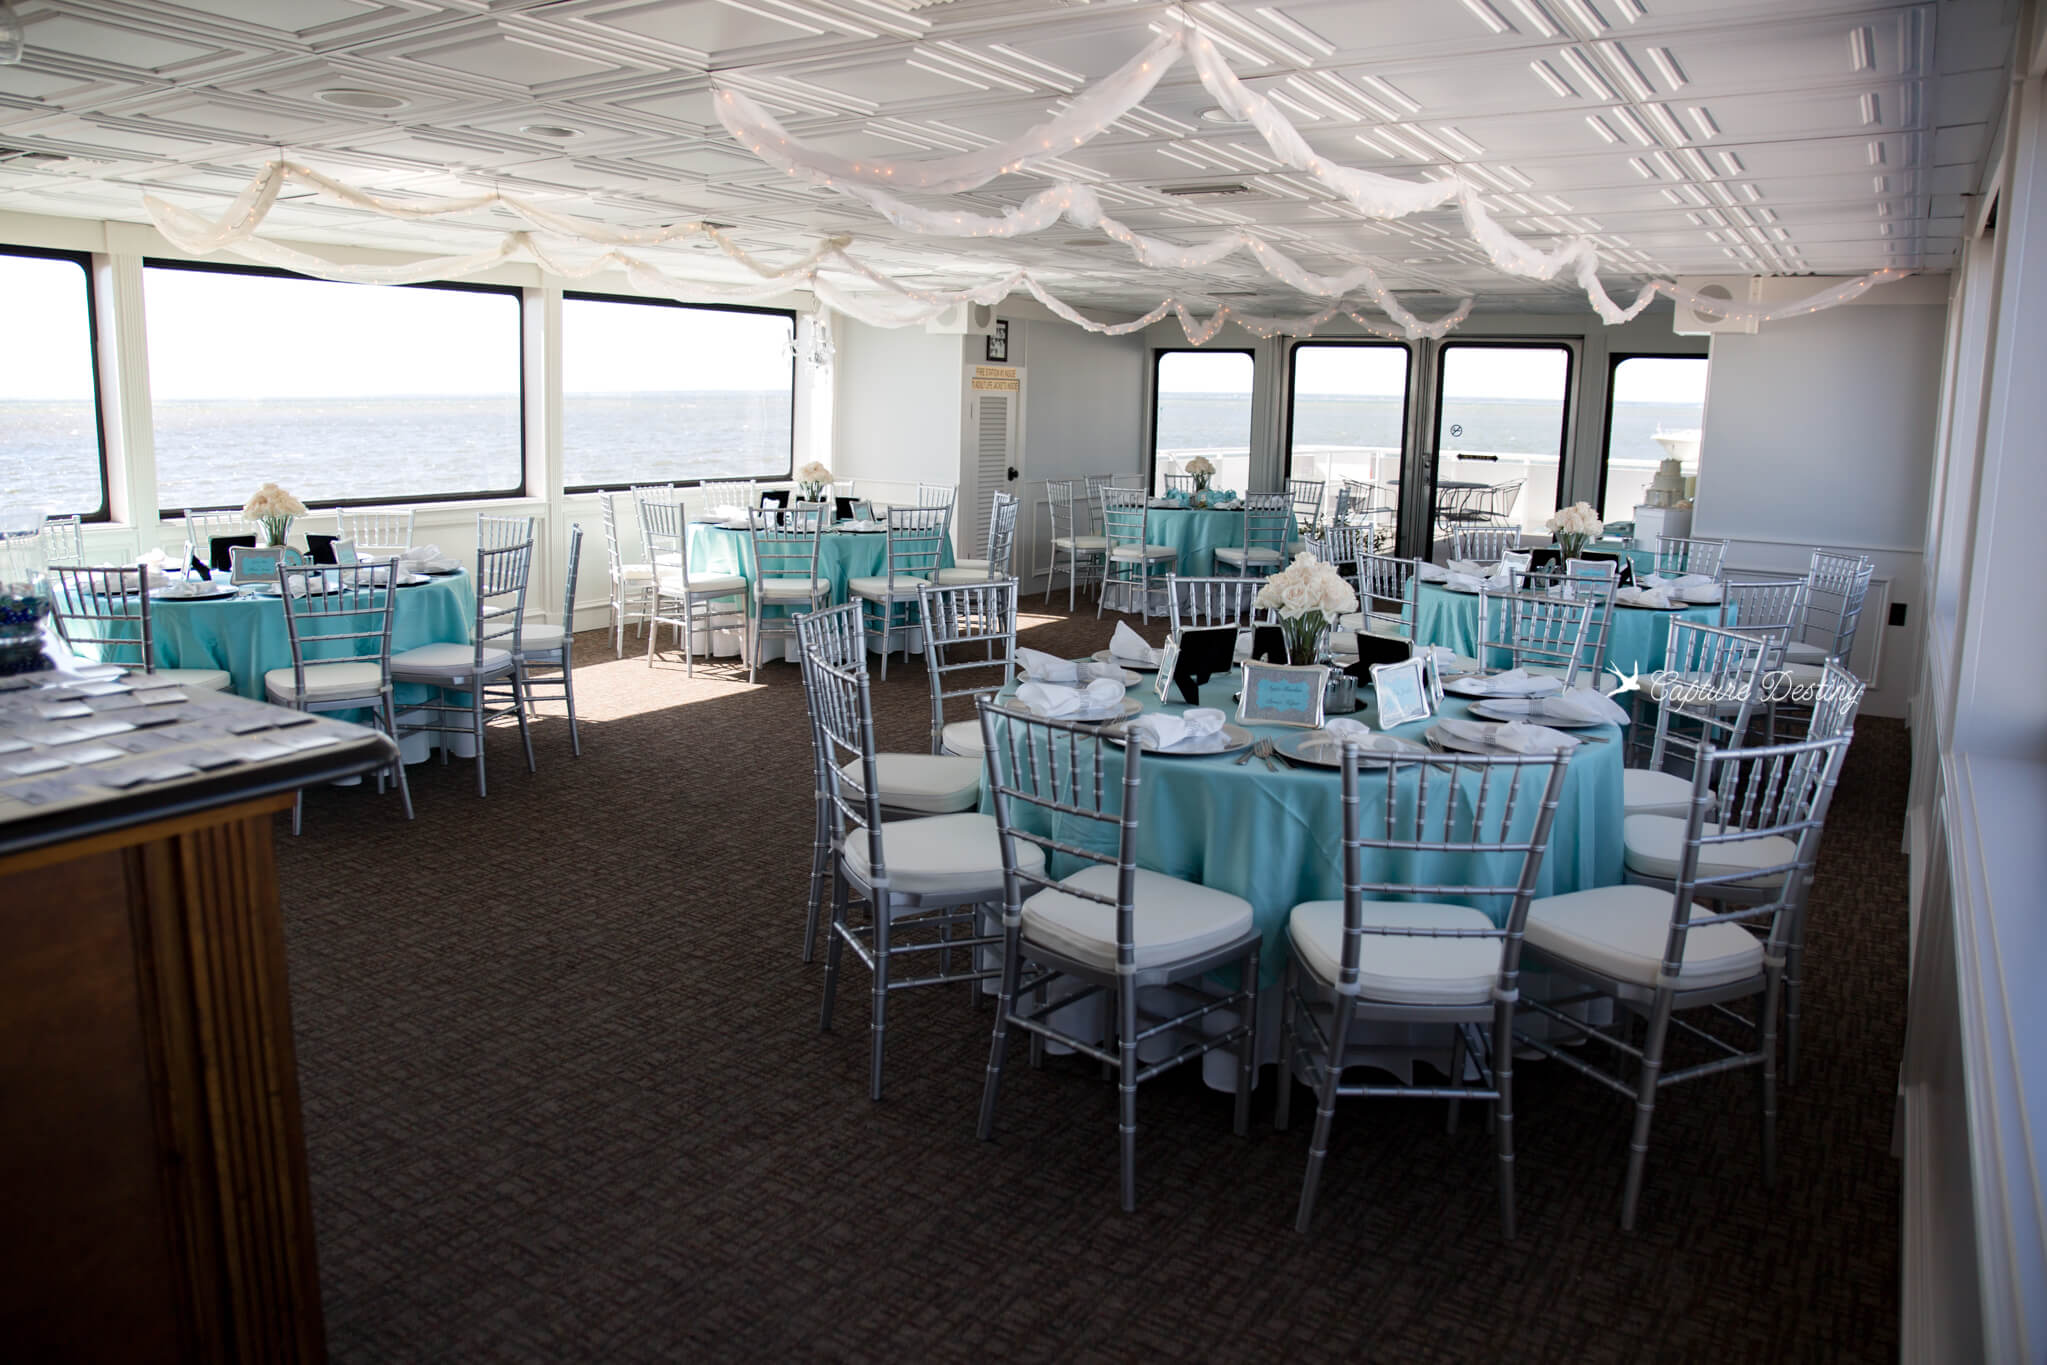 destin wedding reception venue IMG_7526 comp